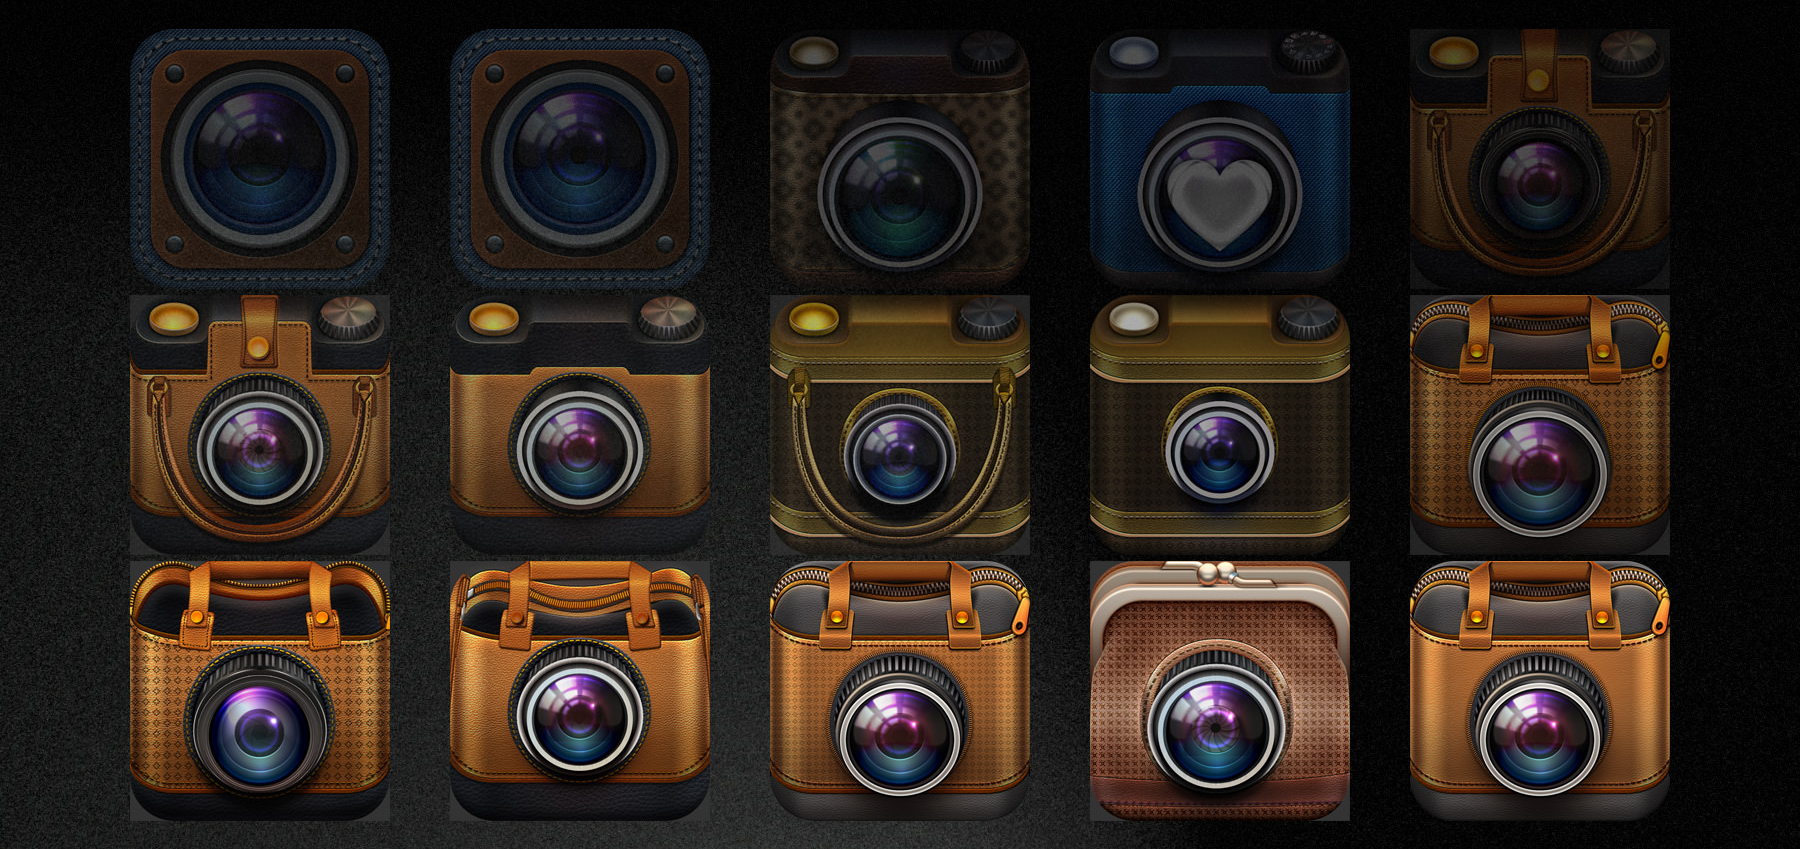 Process of making Do You Like It? app icon.